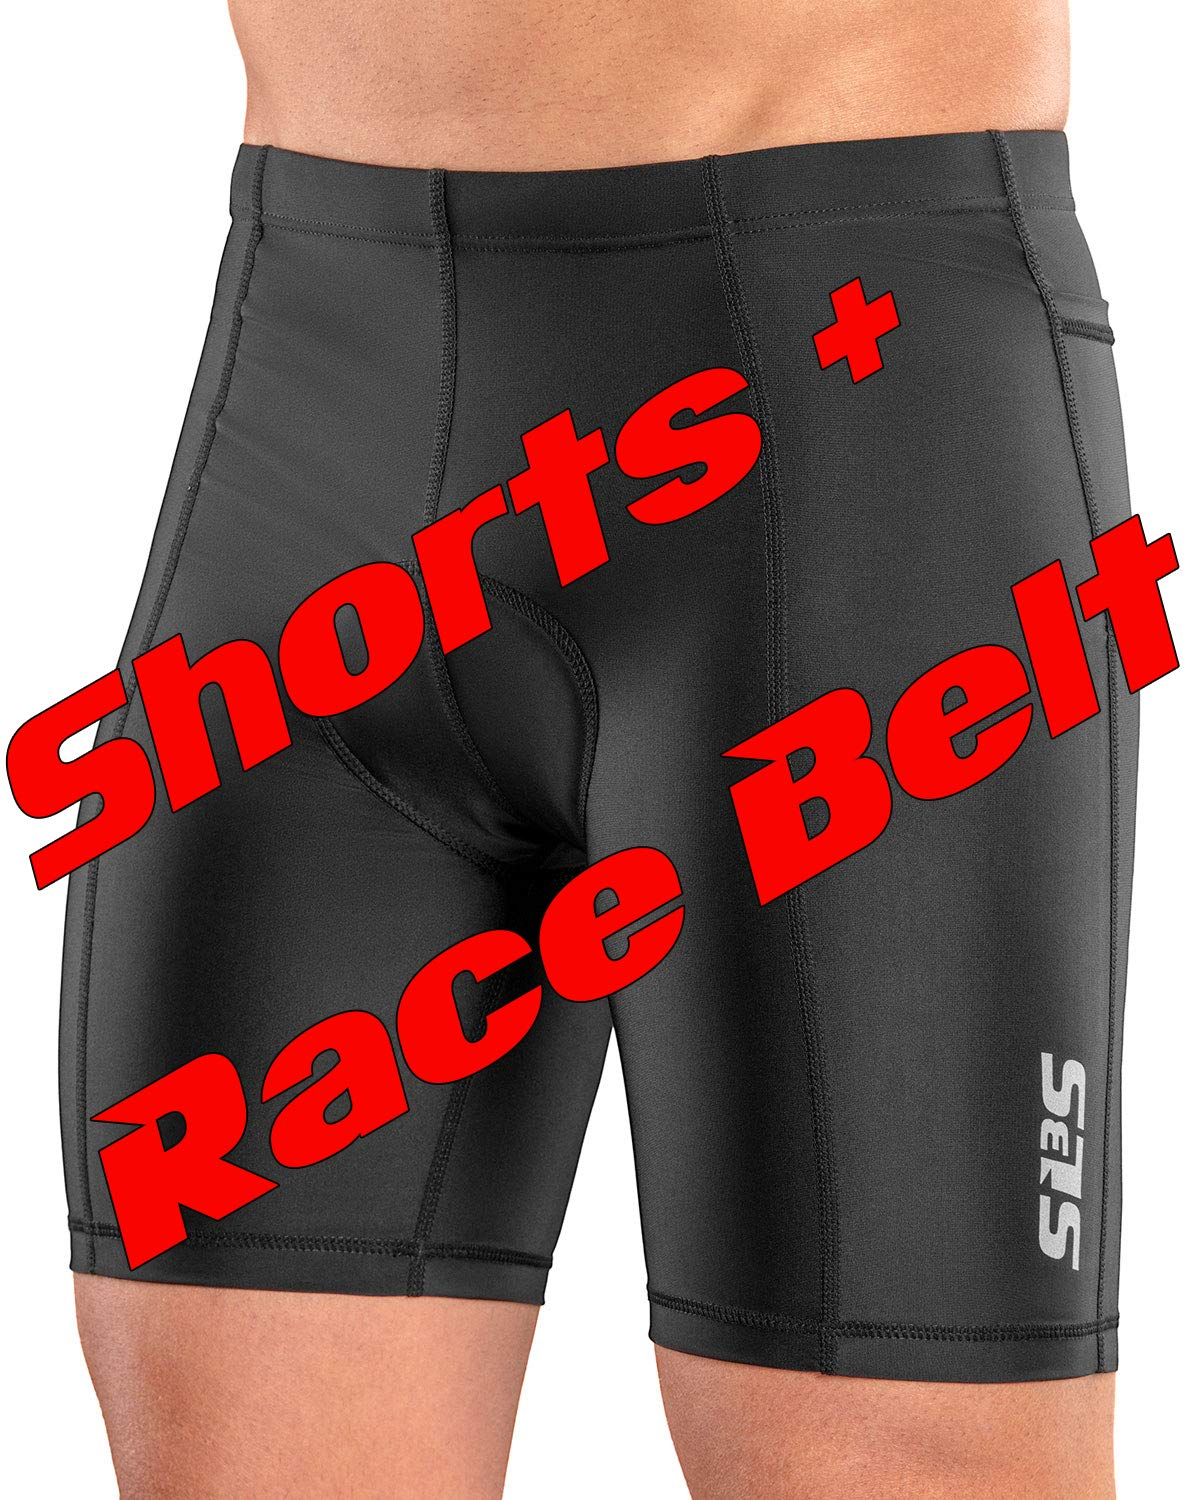 SLS3 Men`s Triathlon Swim Shorts + Race Belt | 2 Pockets Triathalon Shorts | Bike Shorts Men Triathlon | FRT 2.0 | German Designed L by SLS3 (Image #2)